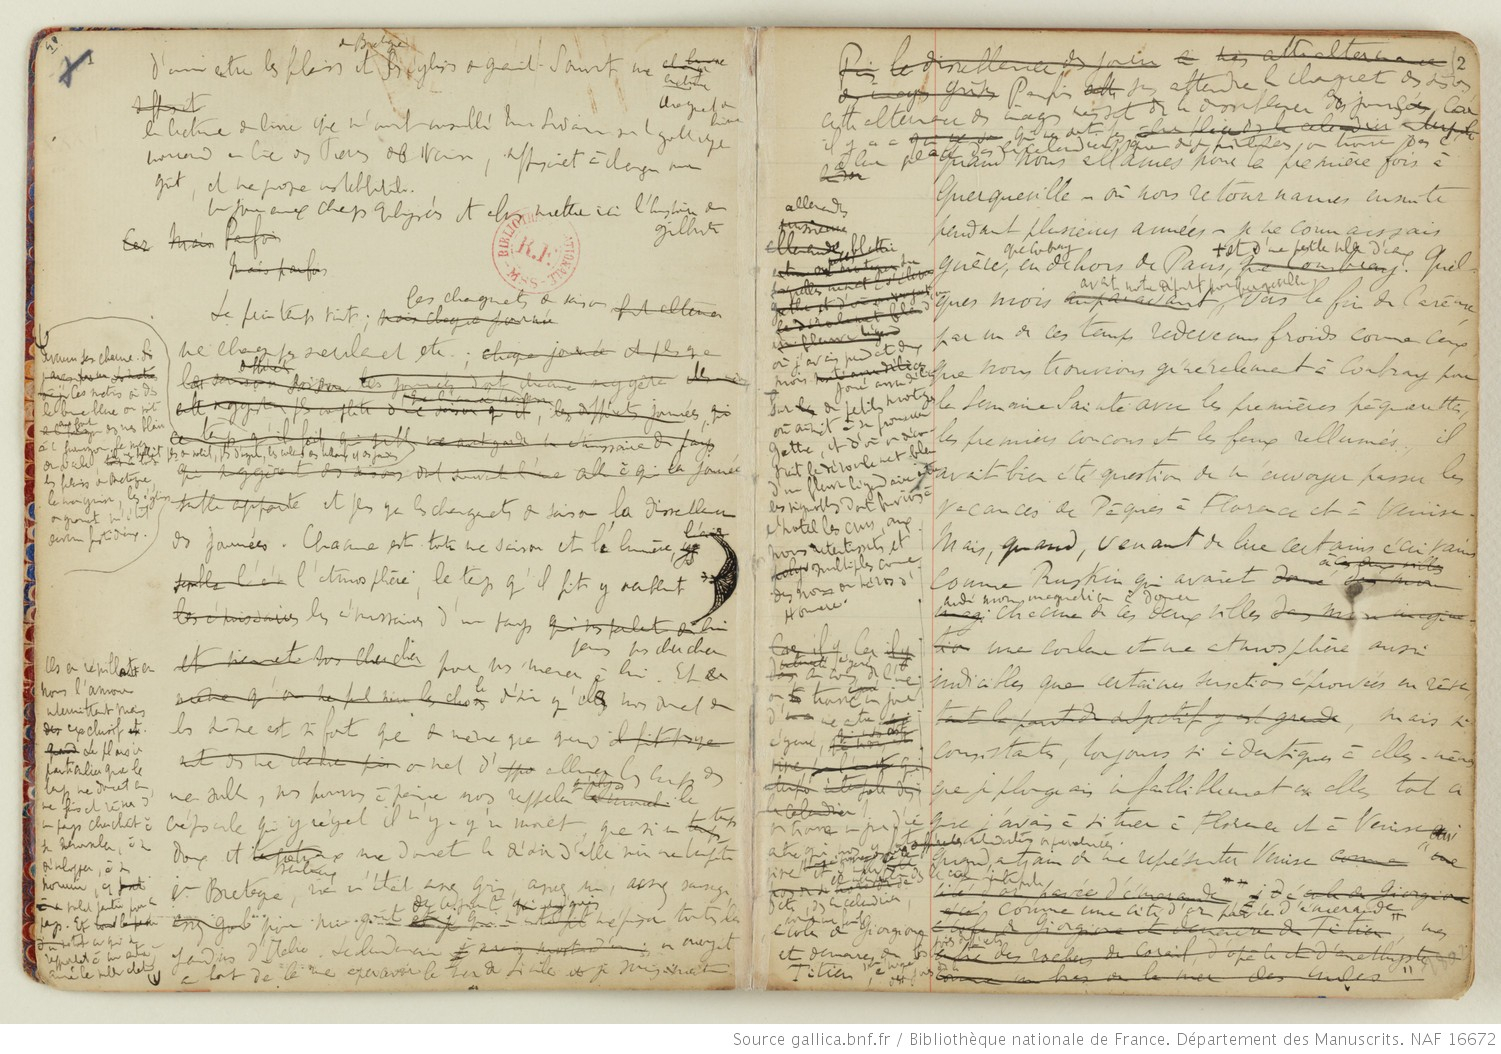 A la recherche du temps perdu, manuscrit de Marcel Proust, collection Bibliothèque nationale de France, département des manuscrits